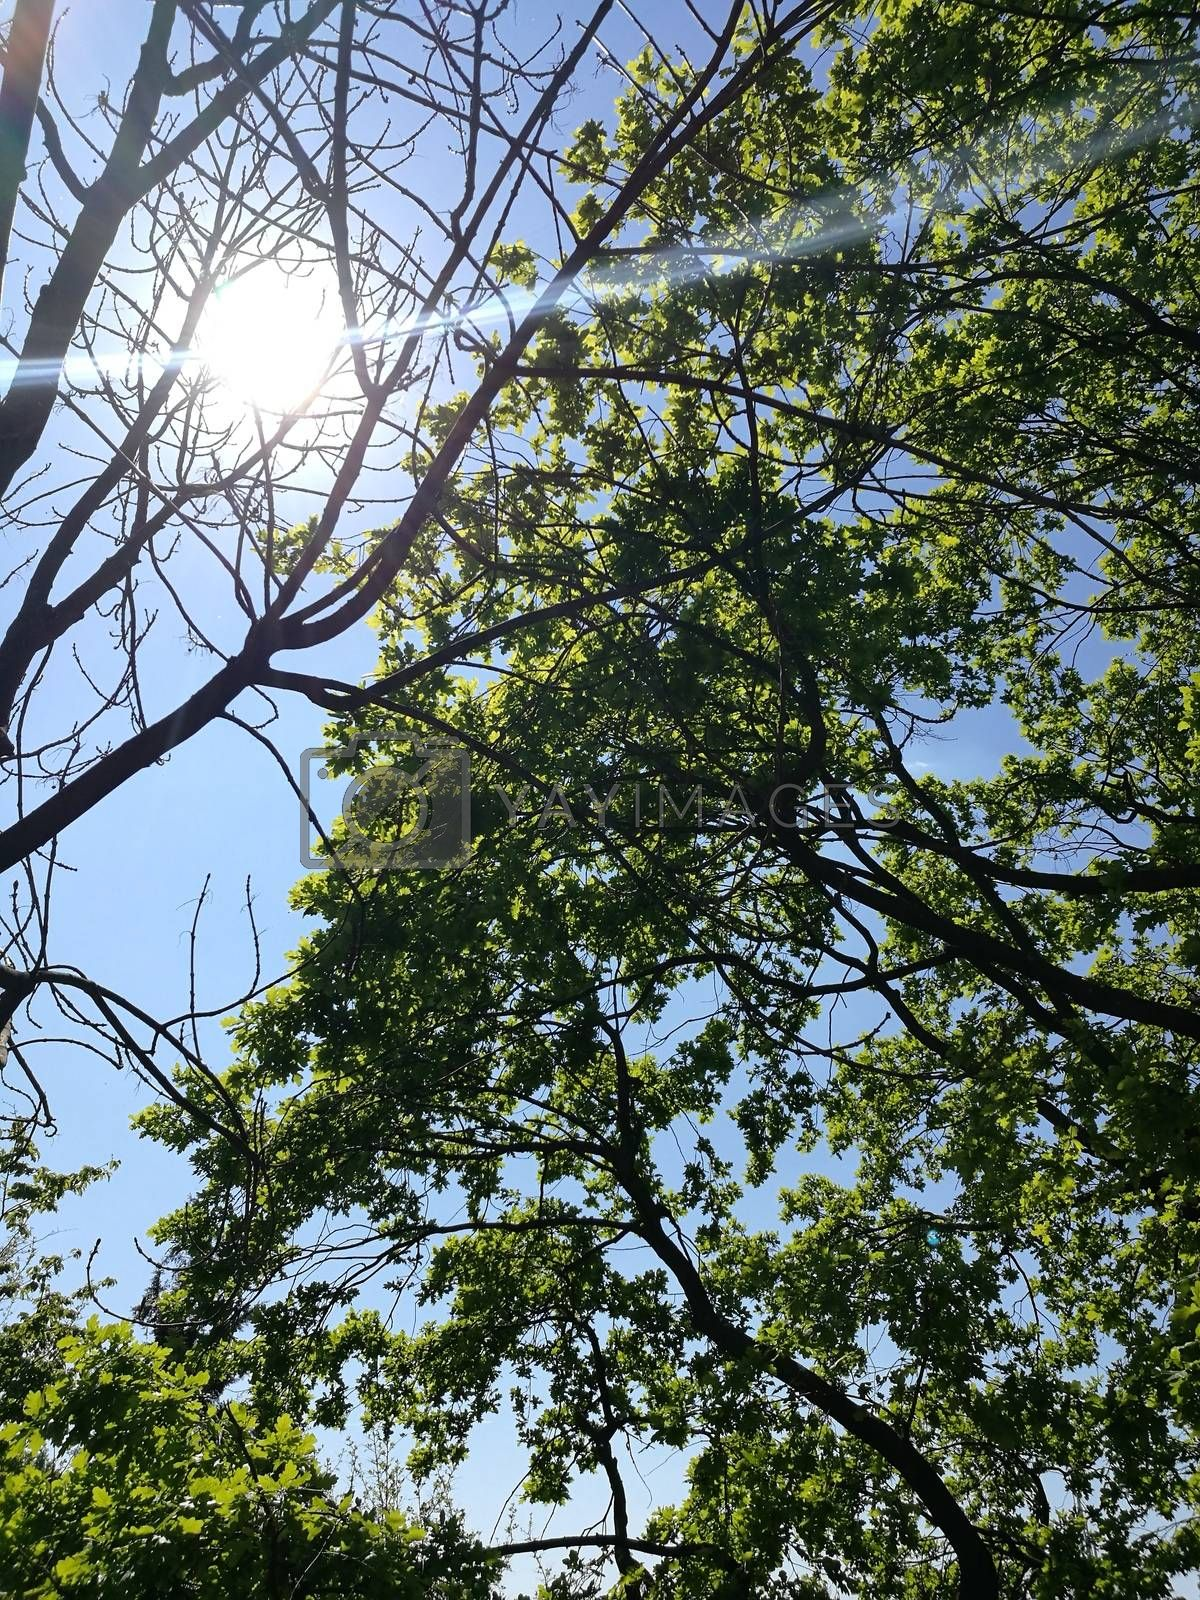 Royalty free image of Sunshine through the trees at the Budapest Arboretum by balage941